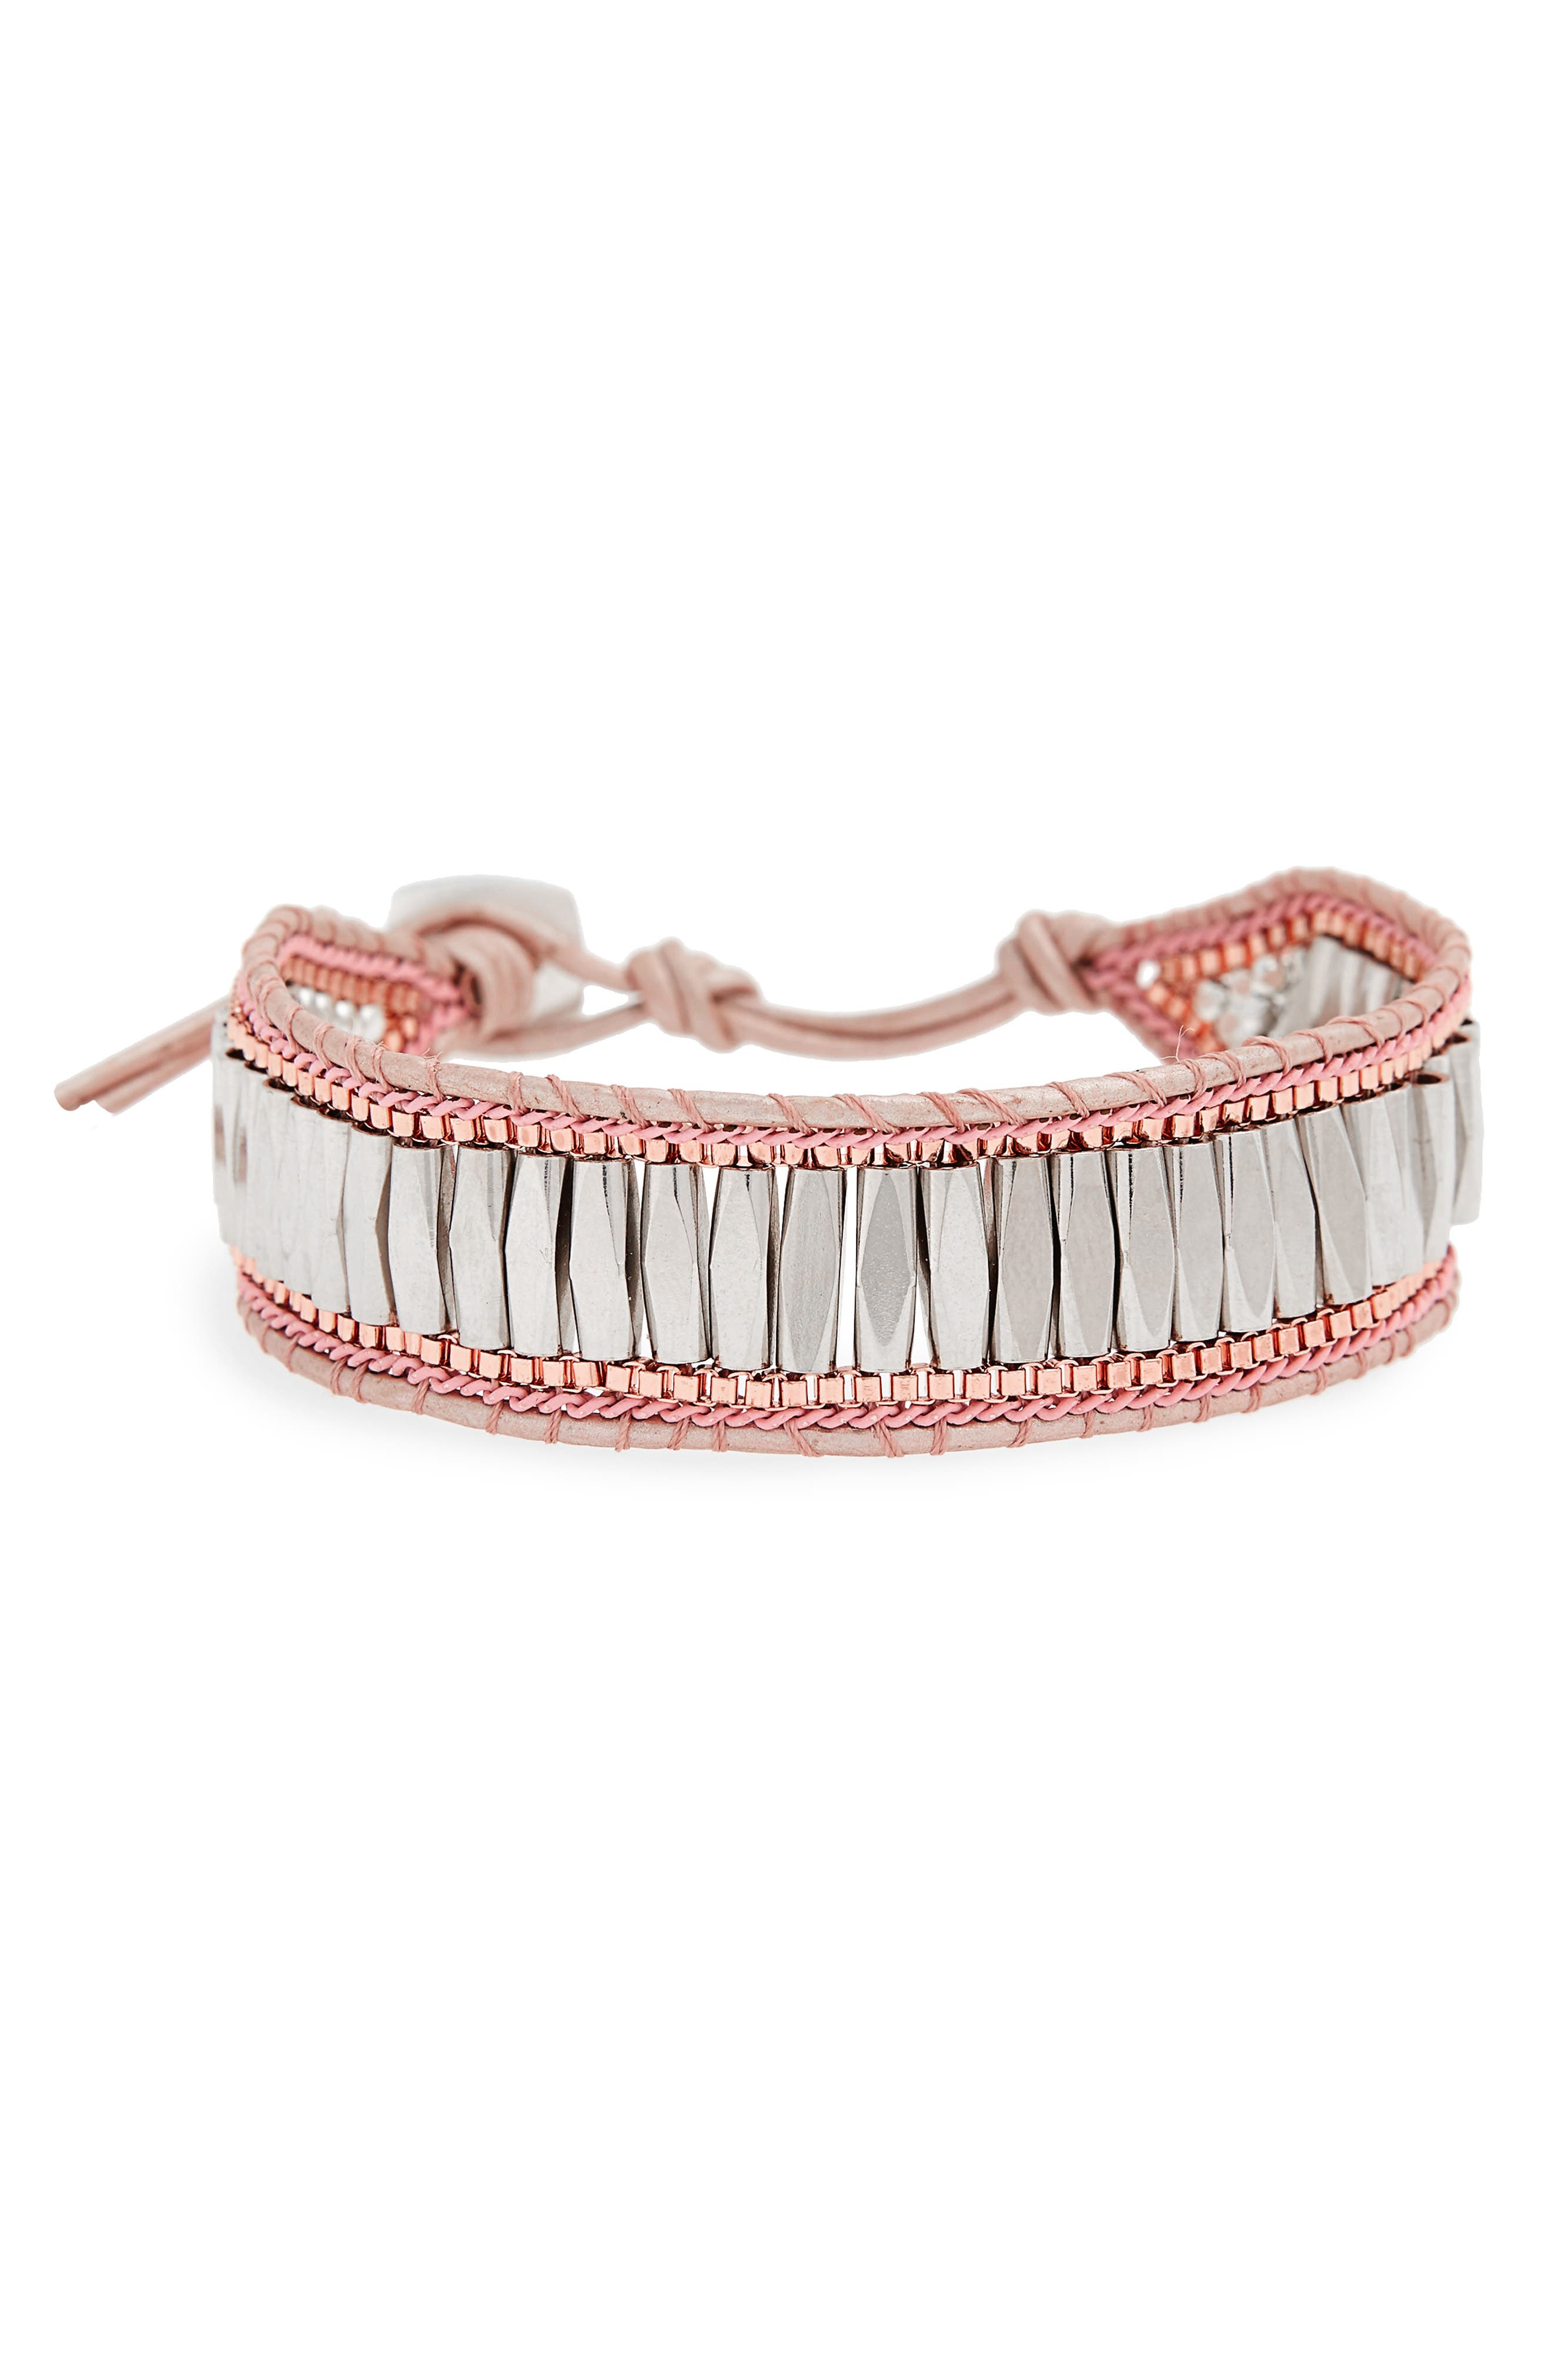 Beaded Leather Bracelet,                             Main thumbnail 1, color,                             Pink